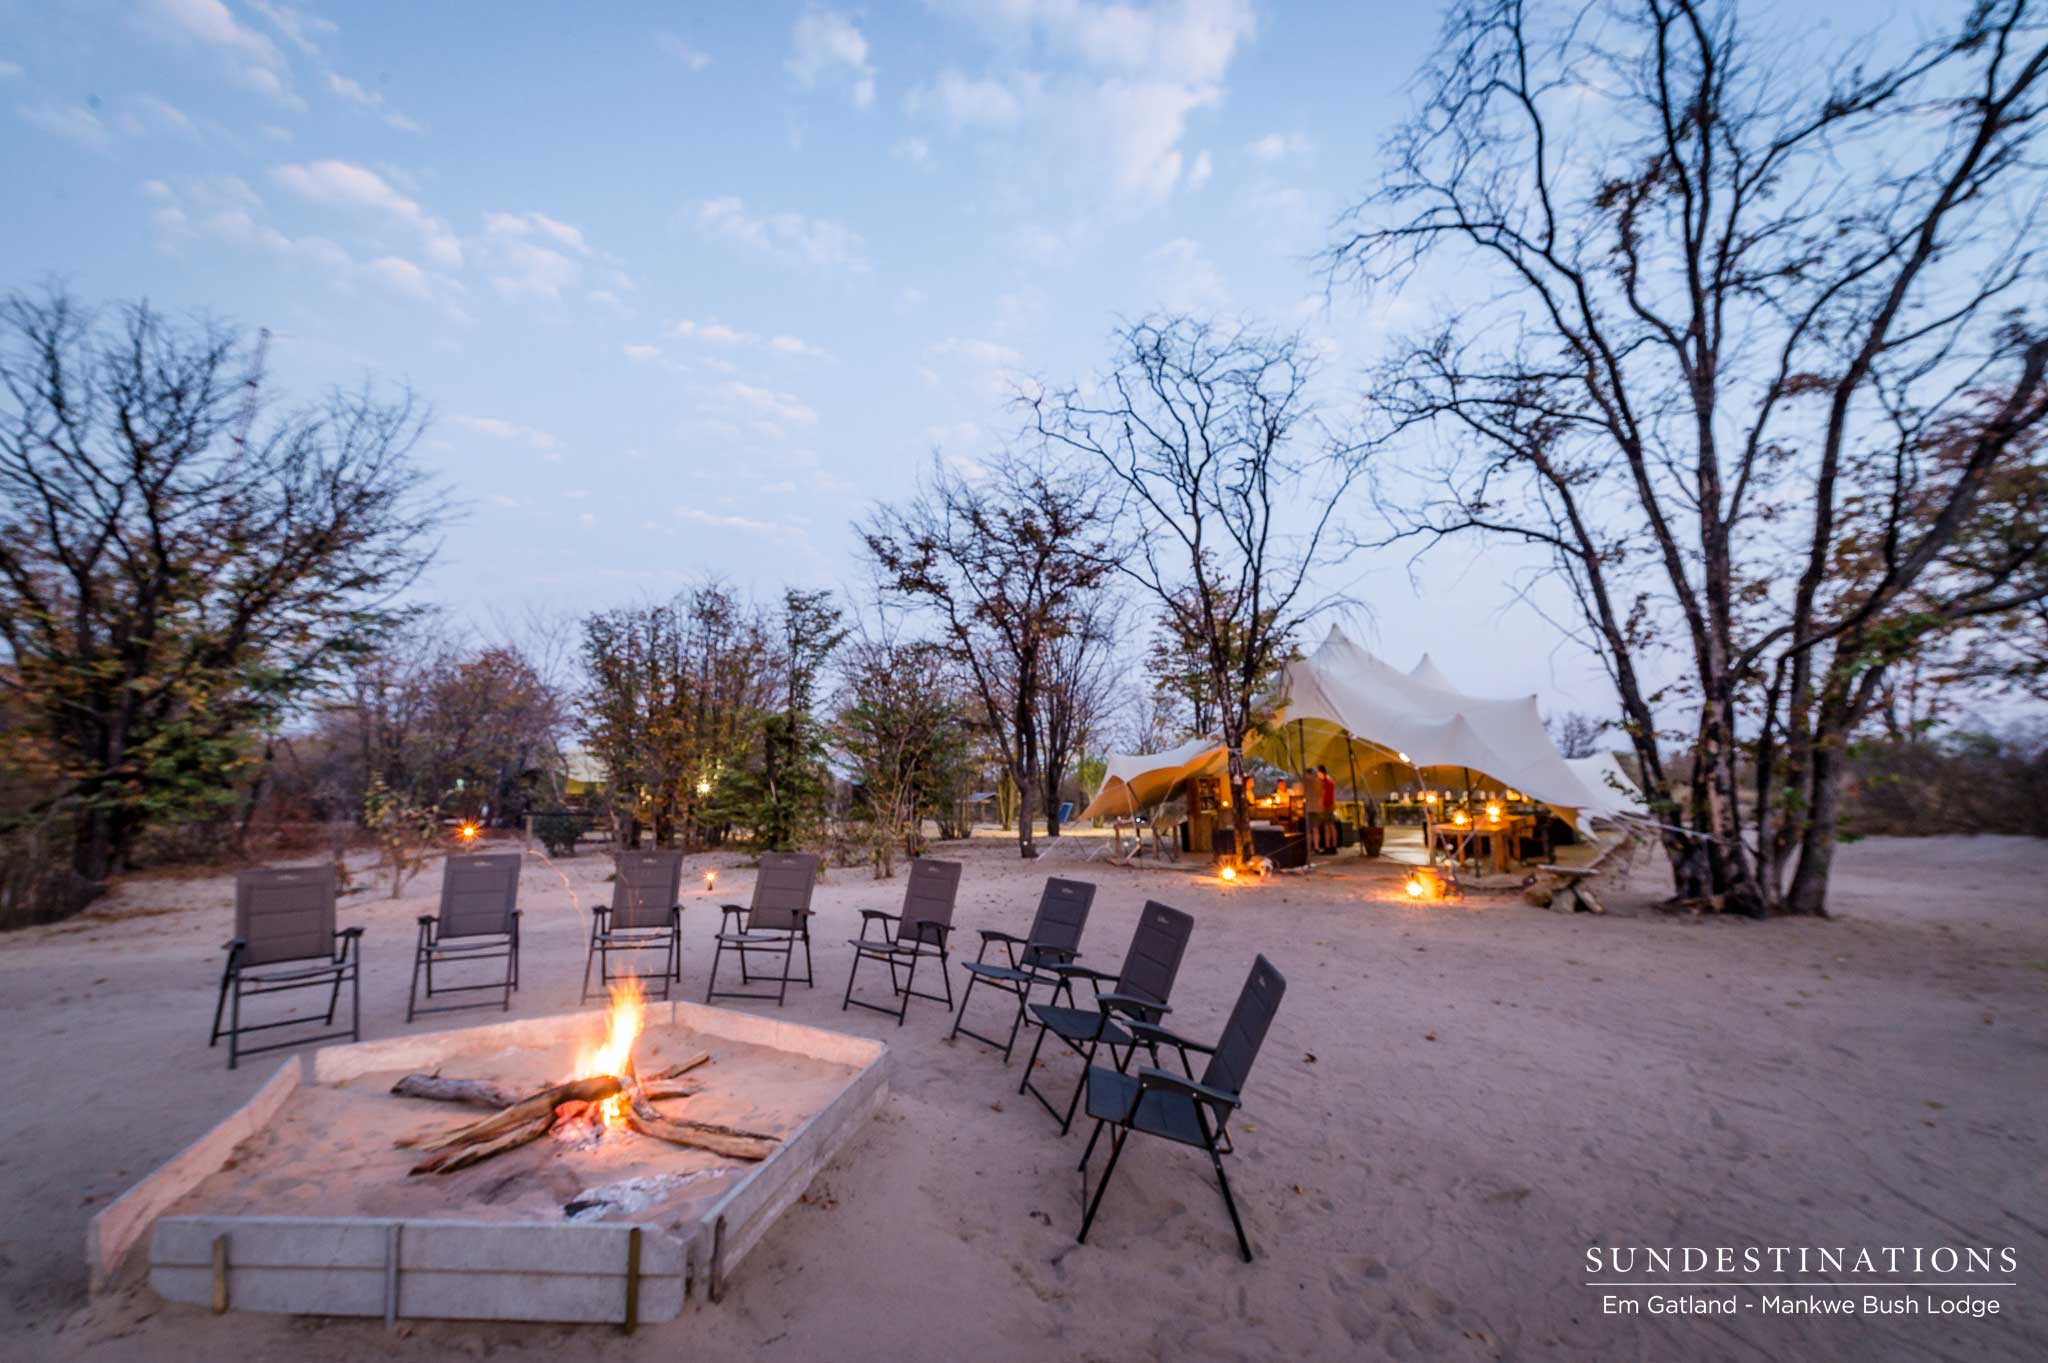 Original Safari Accommodation at Mankwe Bush Lodge